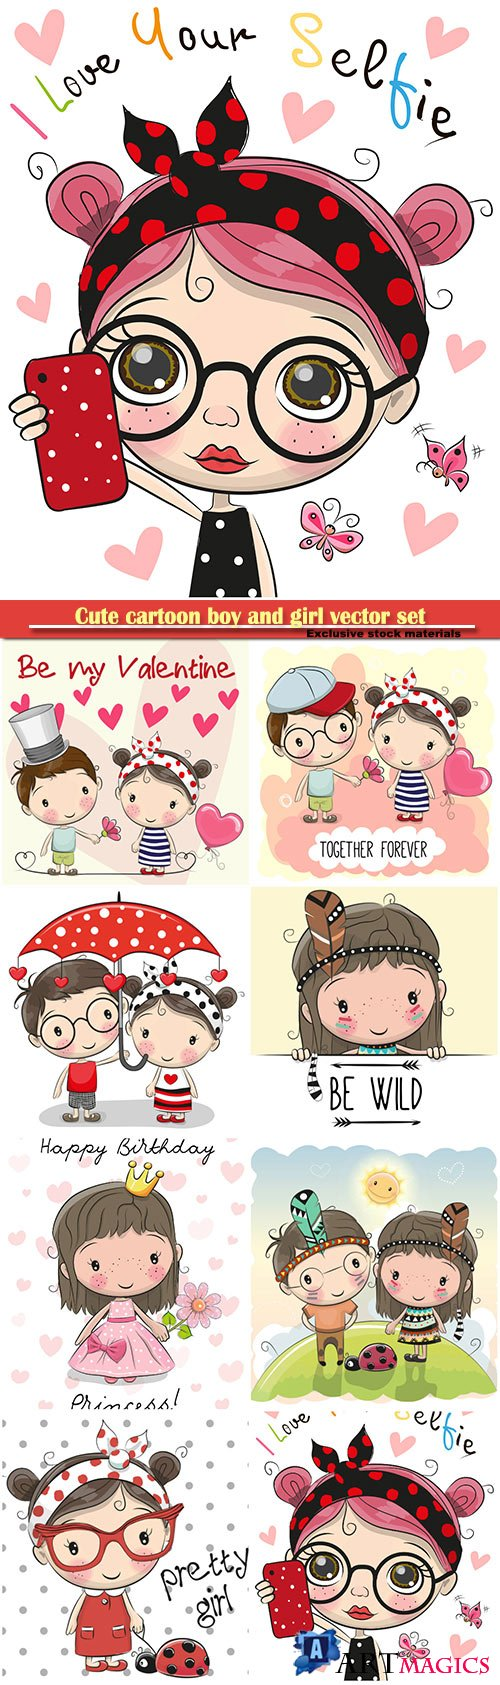 Cute cartoon boy and girl vector set